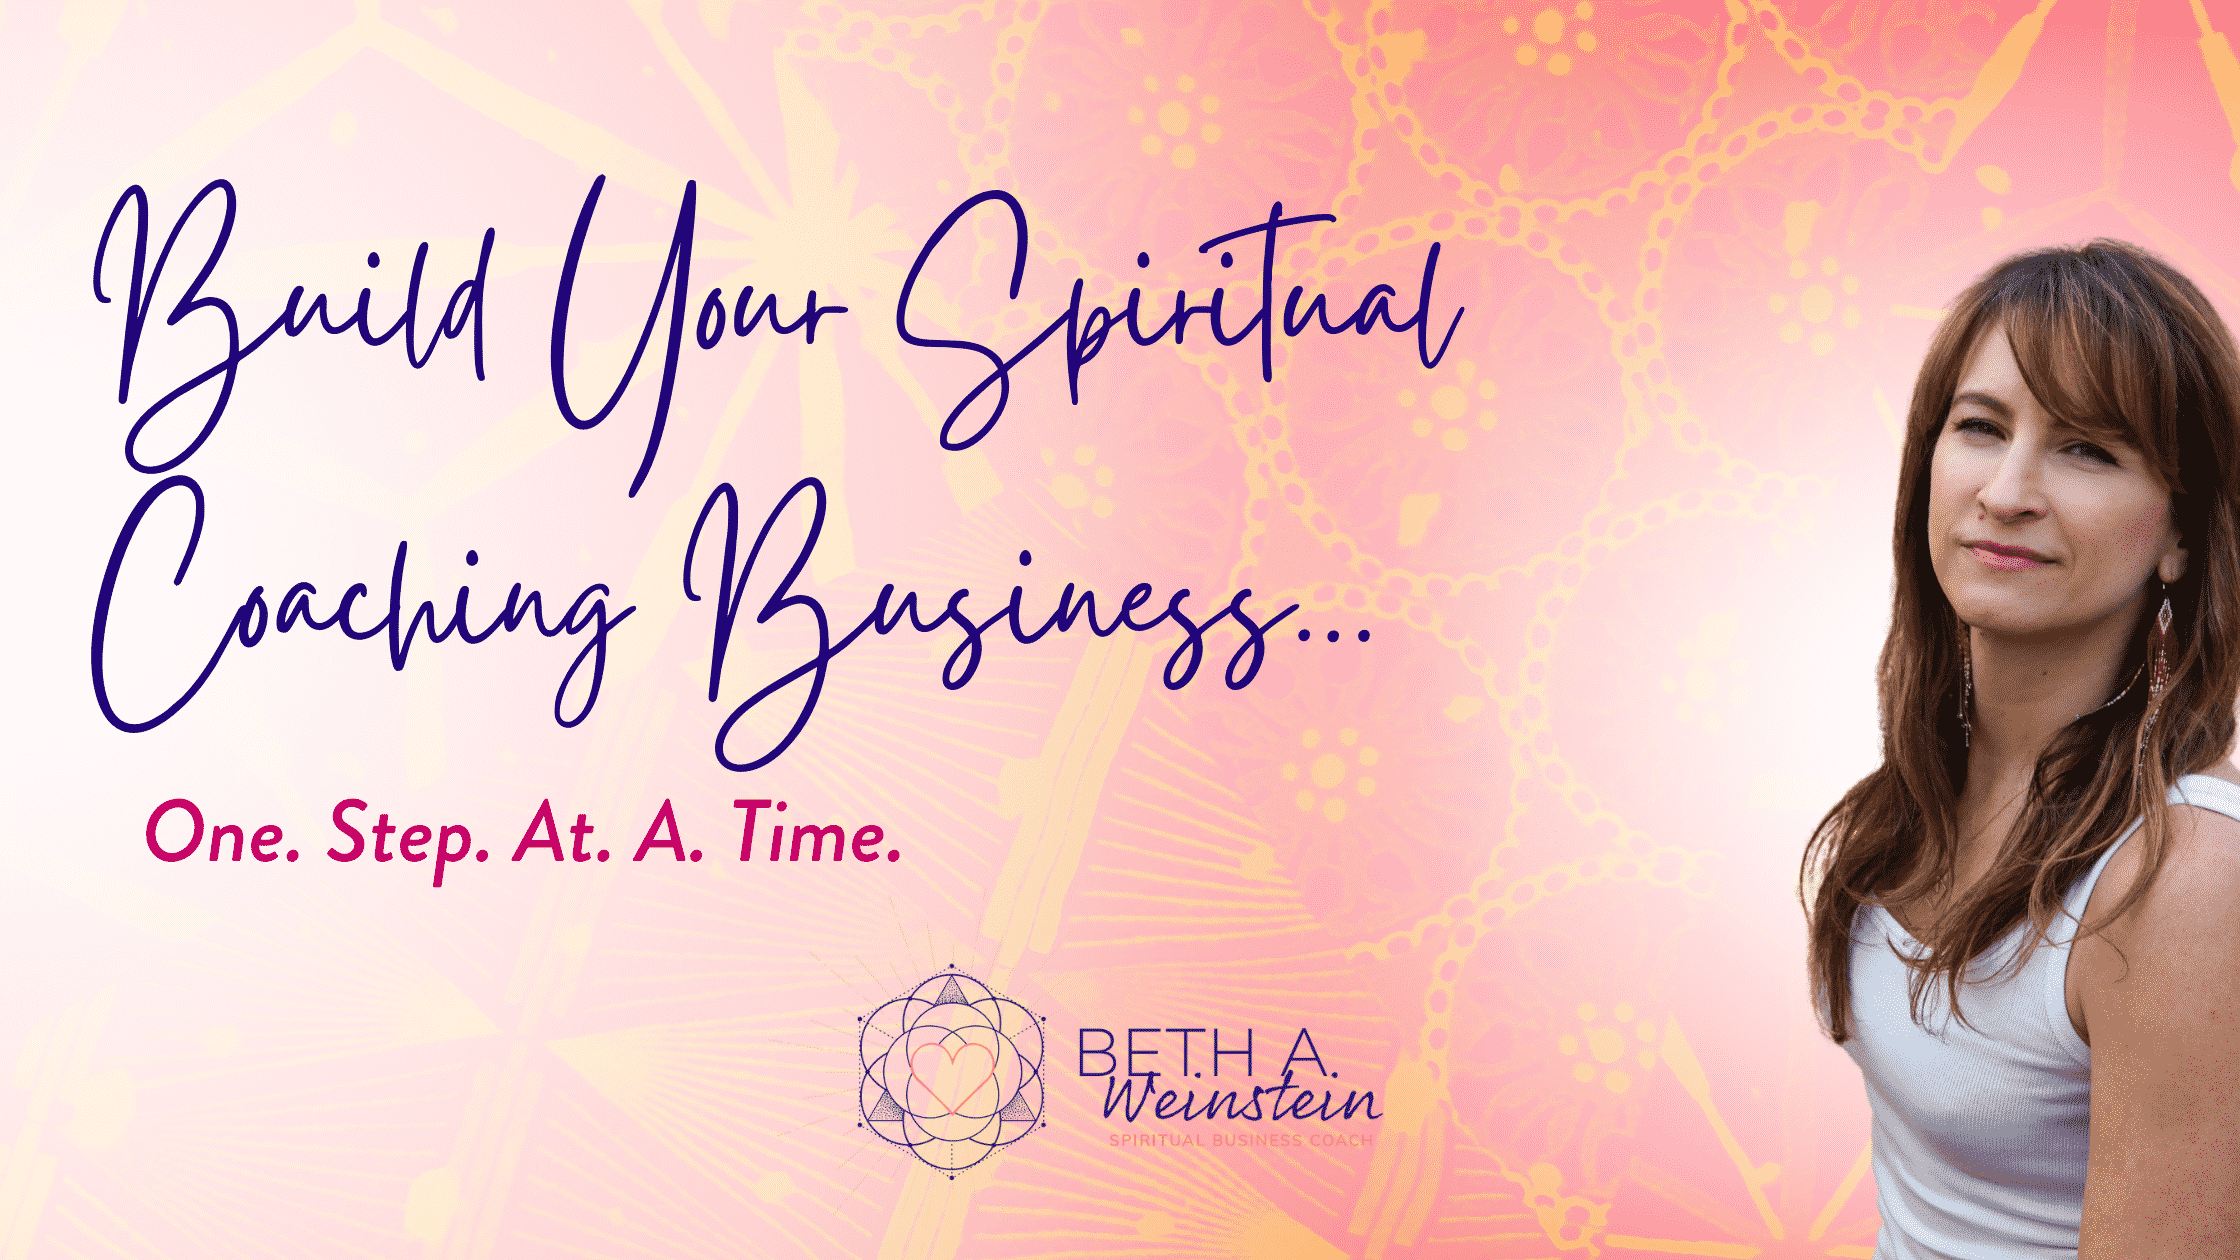 Build Your Spiritual Coaching Business… One. Step. At. A. Time.